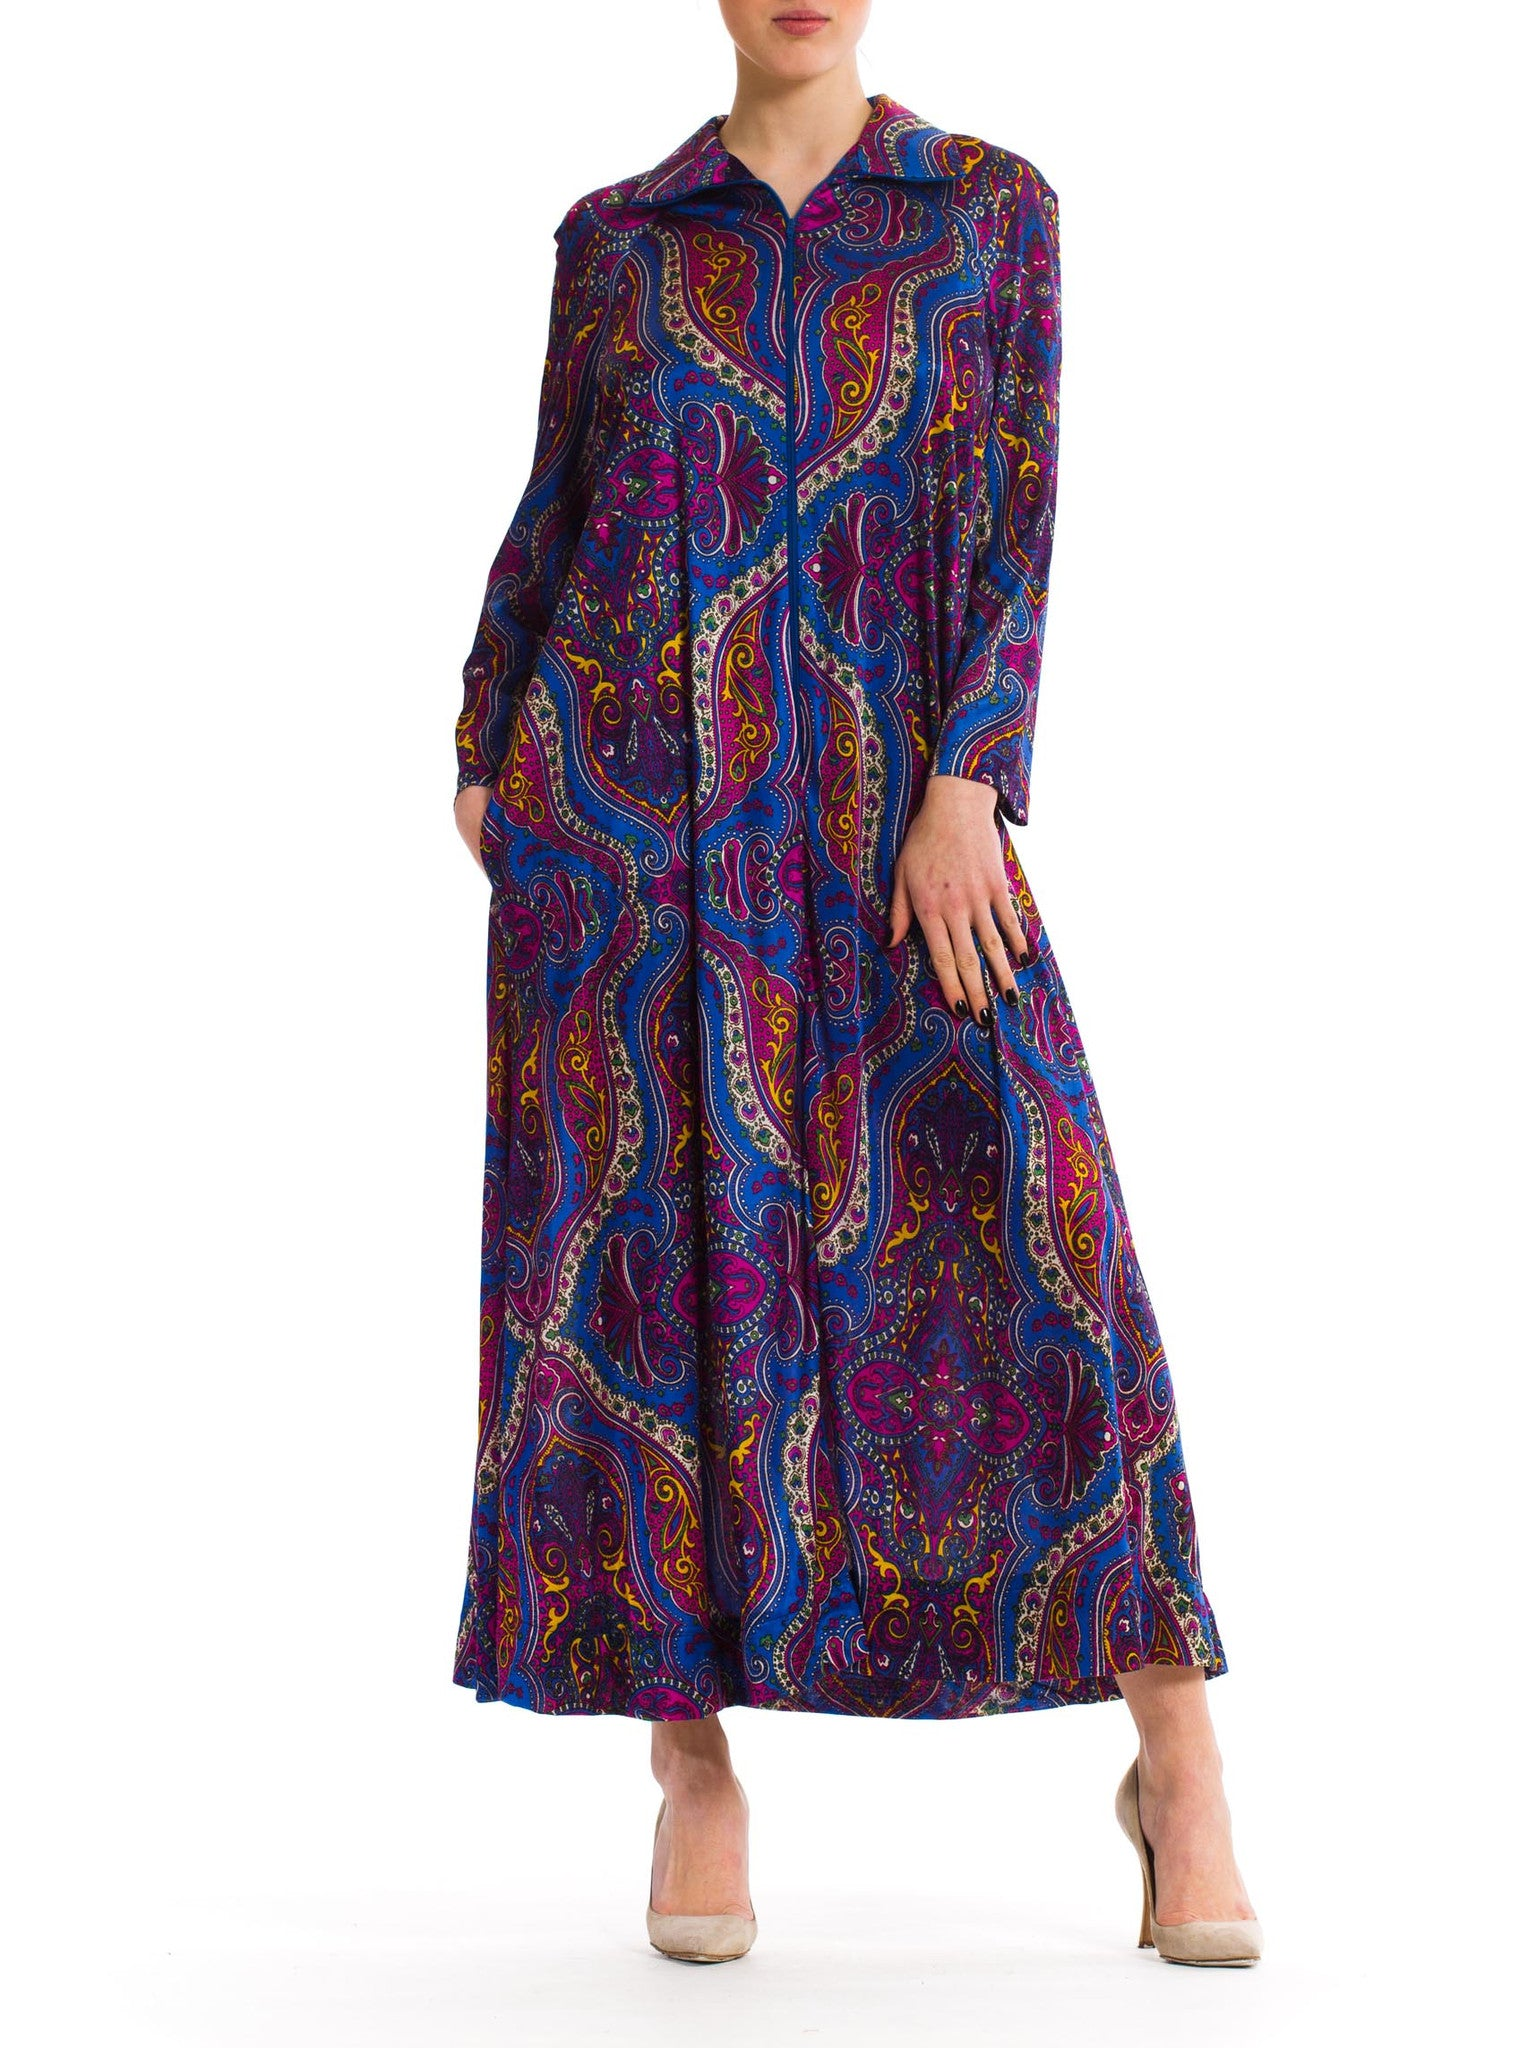 Extravagant Colorful Vintage 1960s Long Dress